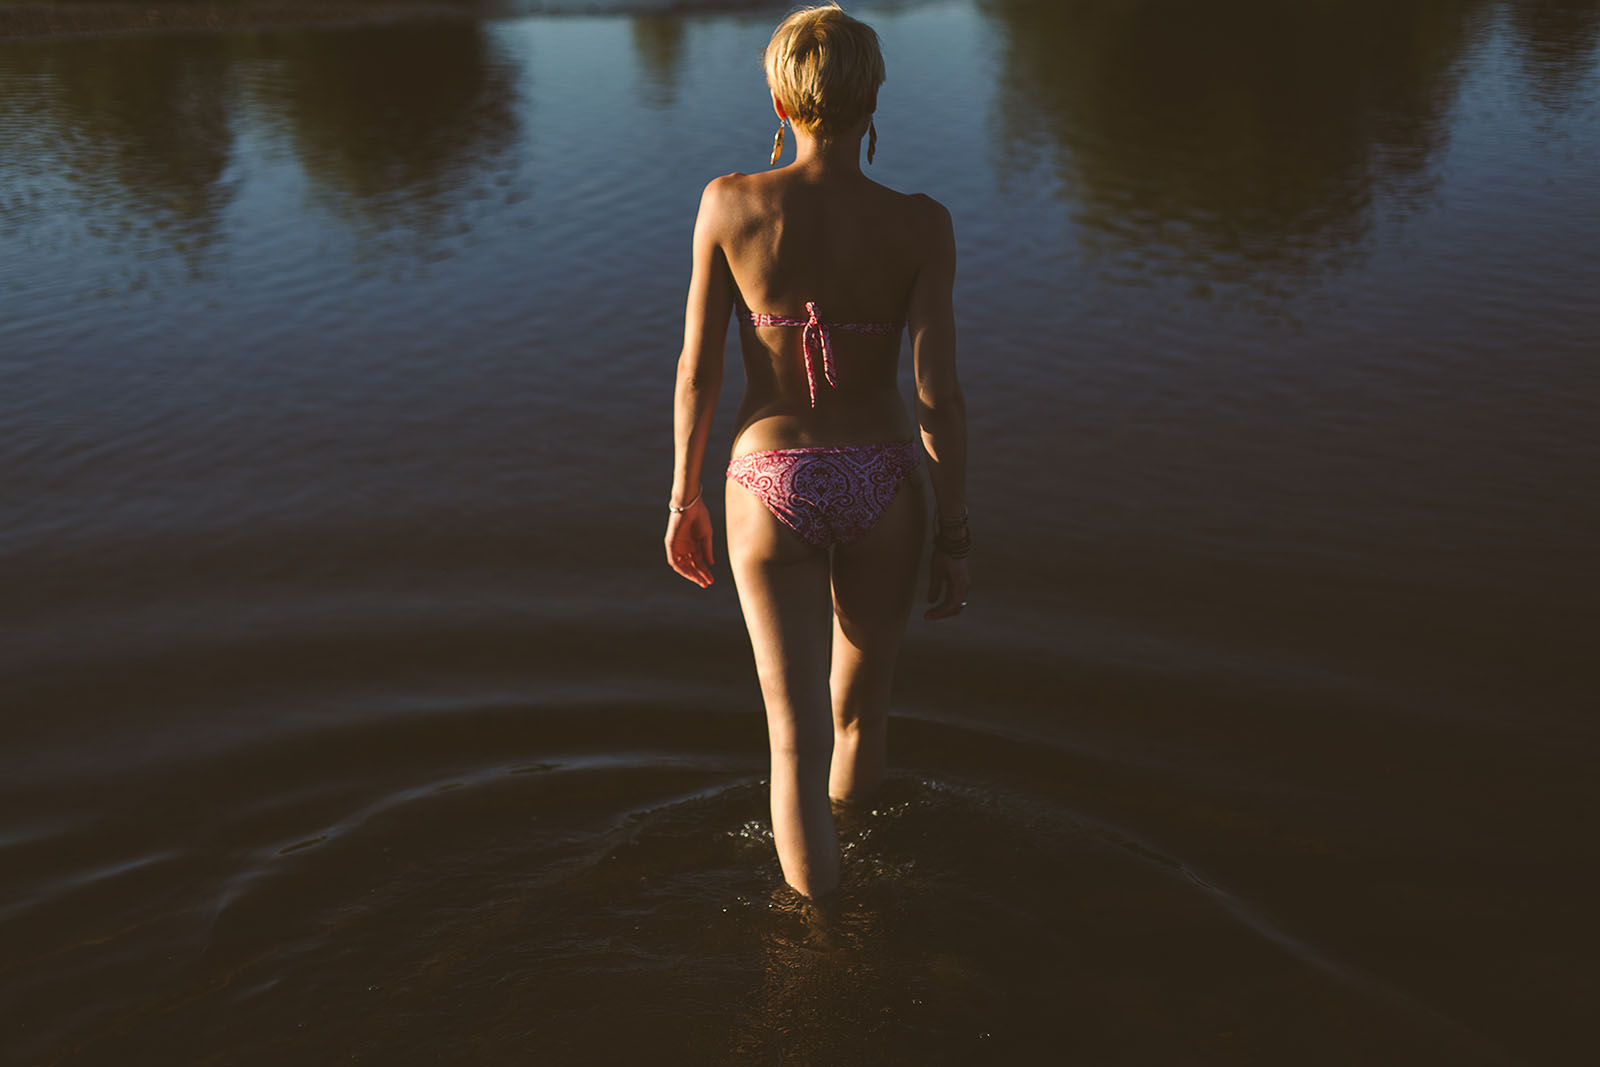 Glamorous photoshoot in outdoor photo shoot intimate outdoor portrait woman walking in water in a swimsuit